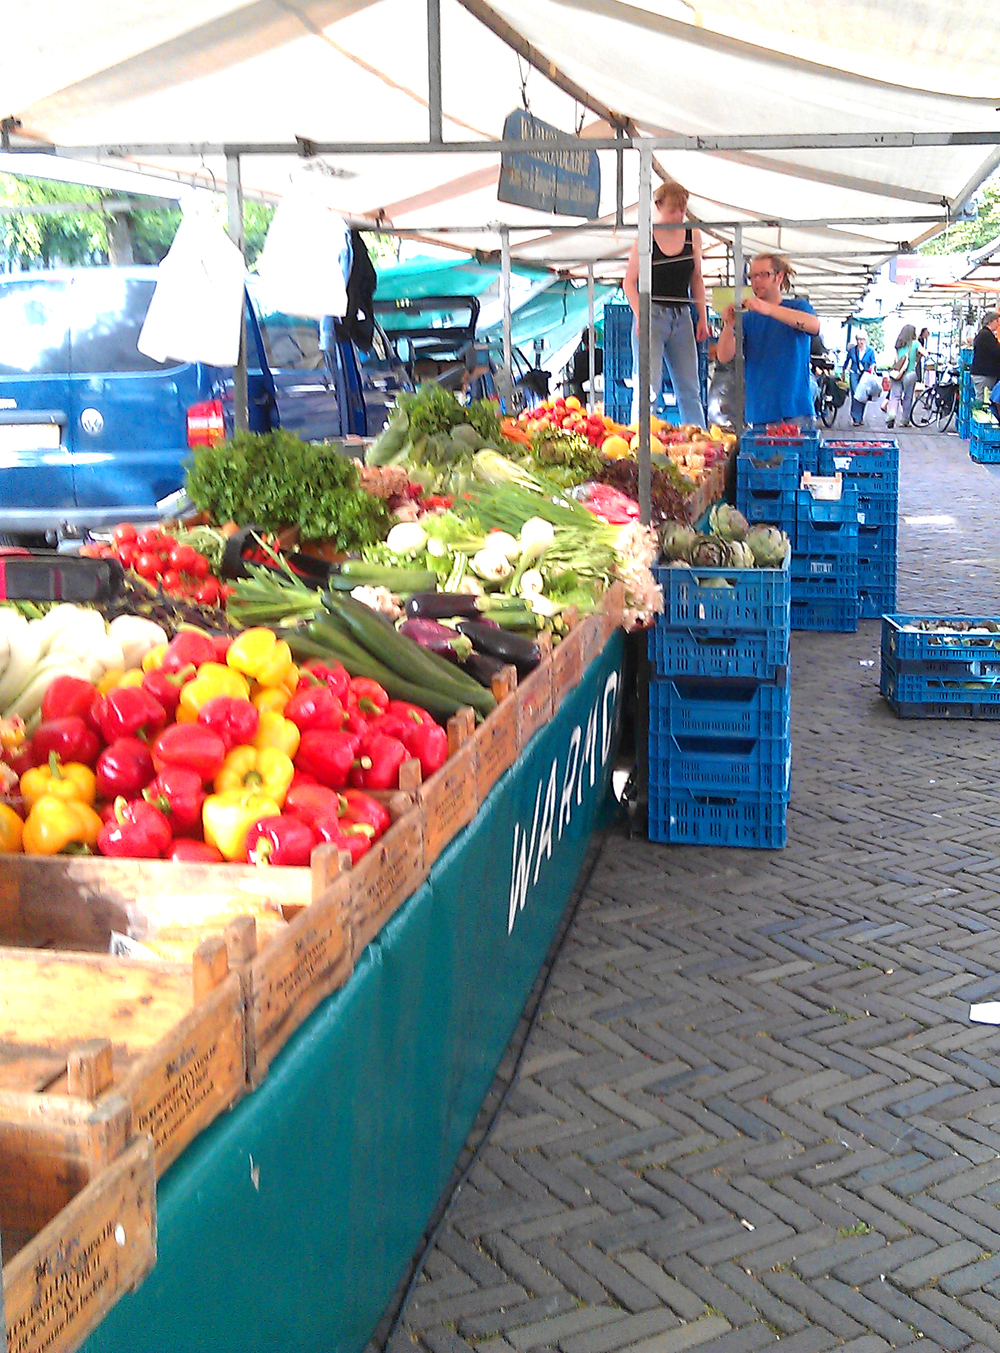 Farmers' Market in Amsterdam - such wonderful, fresh produce!